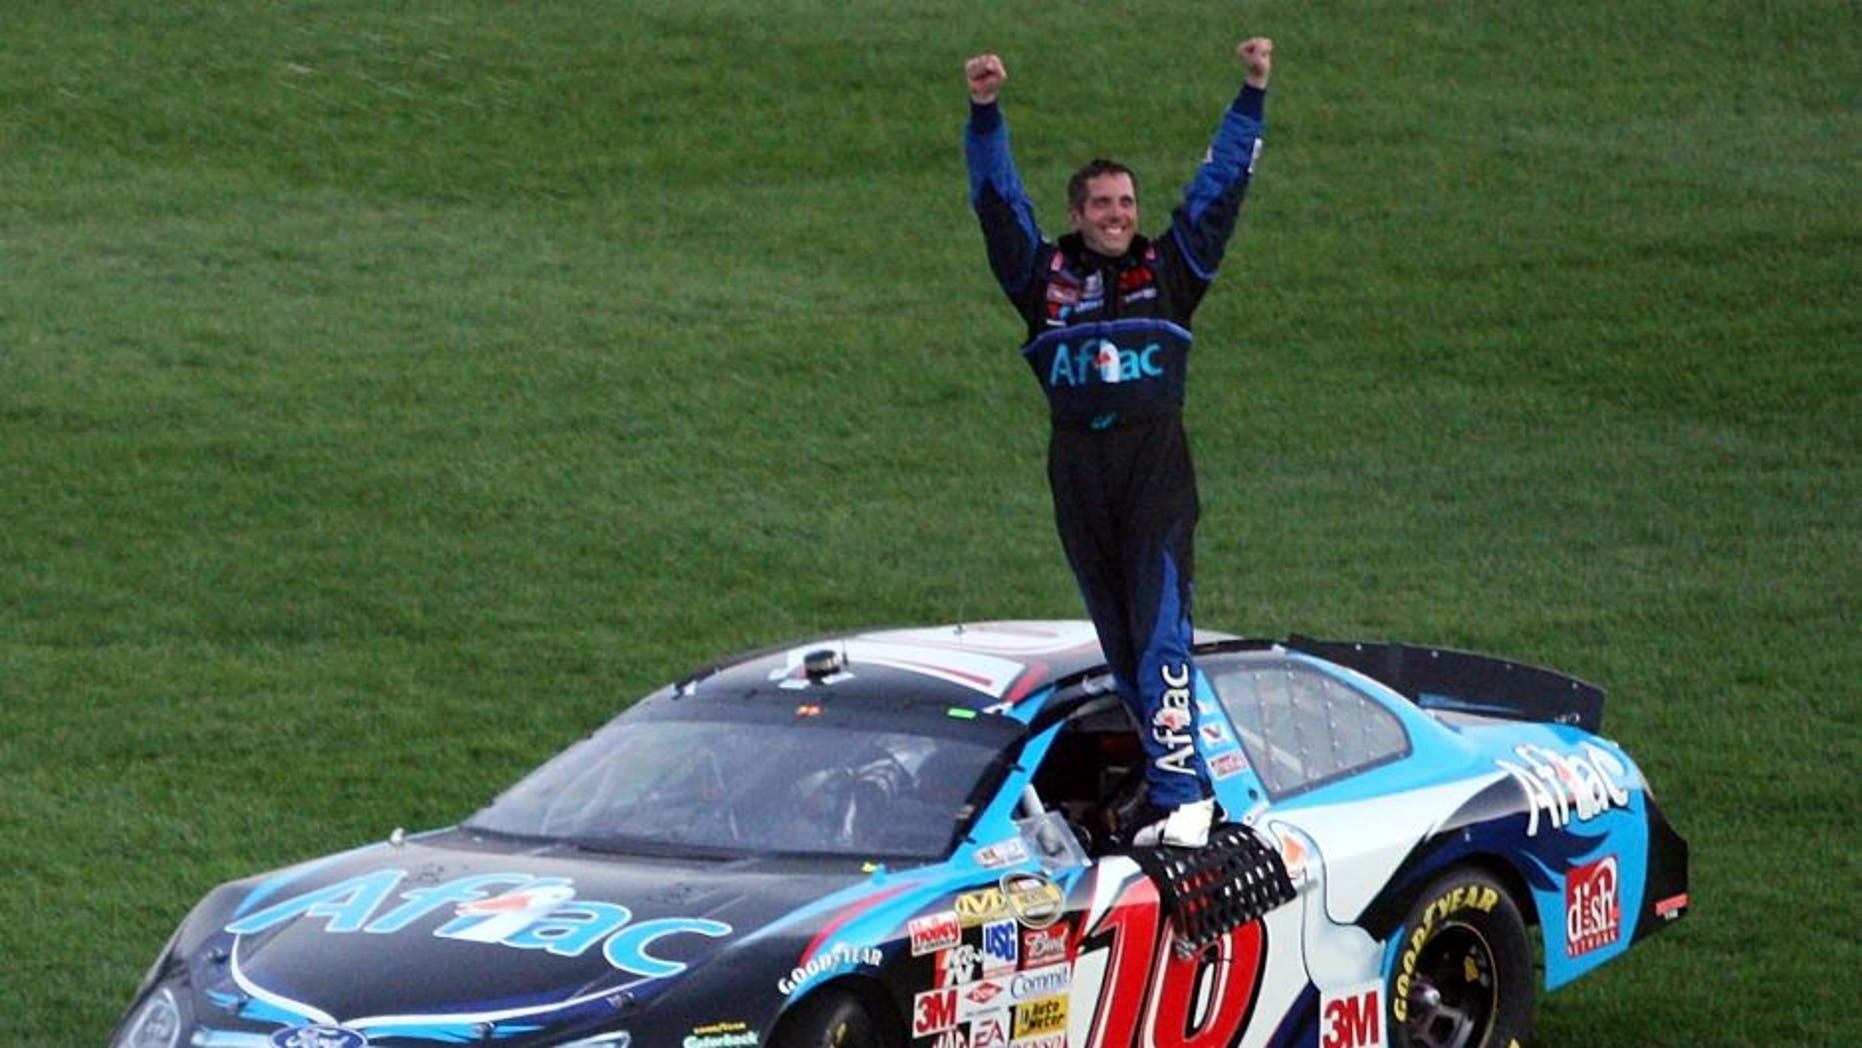 KANSAS CITY, KS - SEPTEMBER 30: Greg Biffle, driver of the #16 Aflac Ford, celebrates after winning the NASCAR Nextel Cup Series LifeLock 400 at Kansas Speedway on September 30, 2007 in Kansas City, Kansas. (Photo by Jamie Squire/Getty Images)